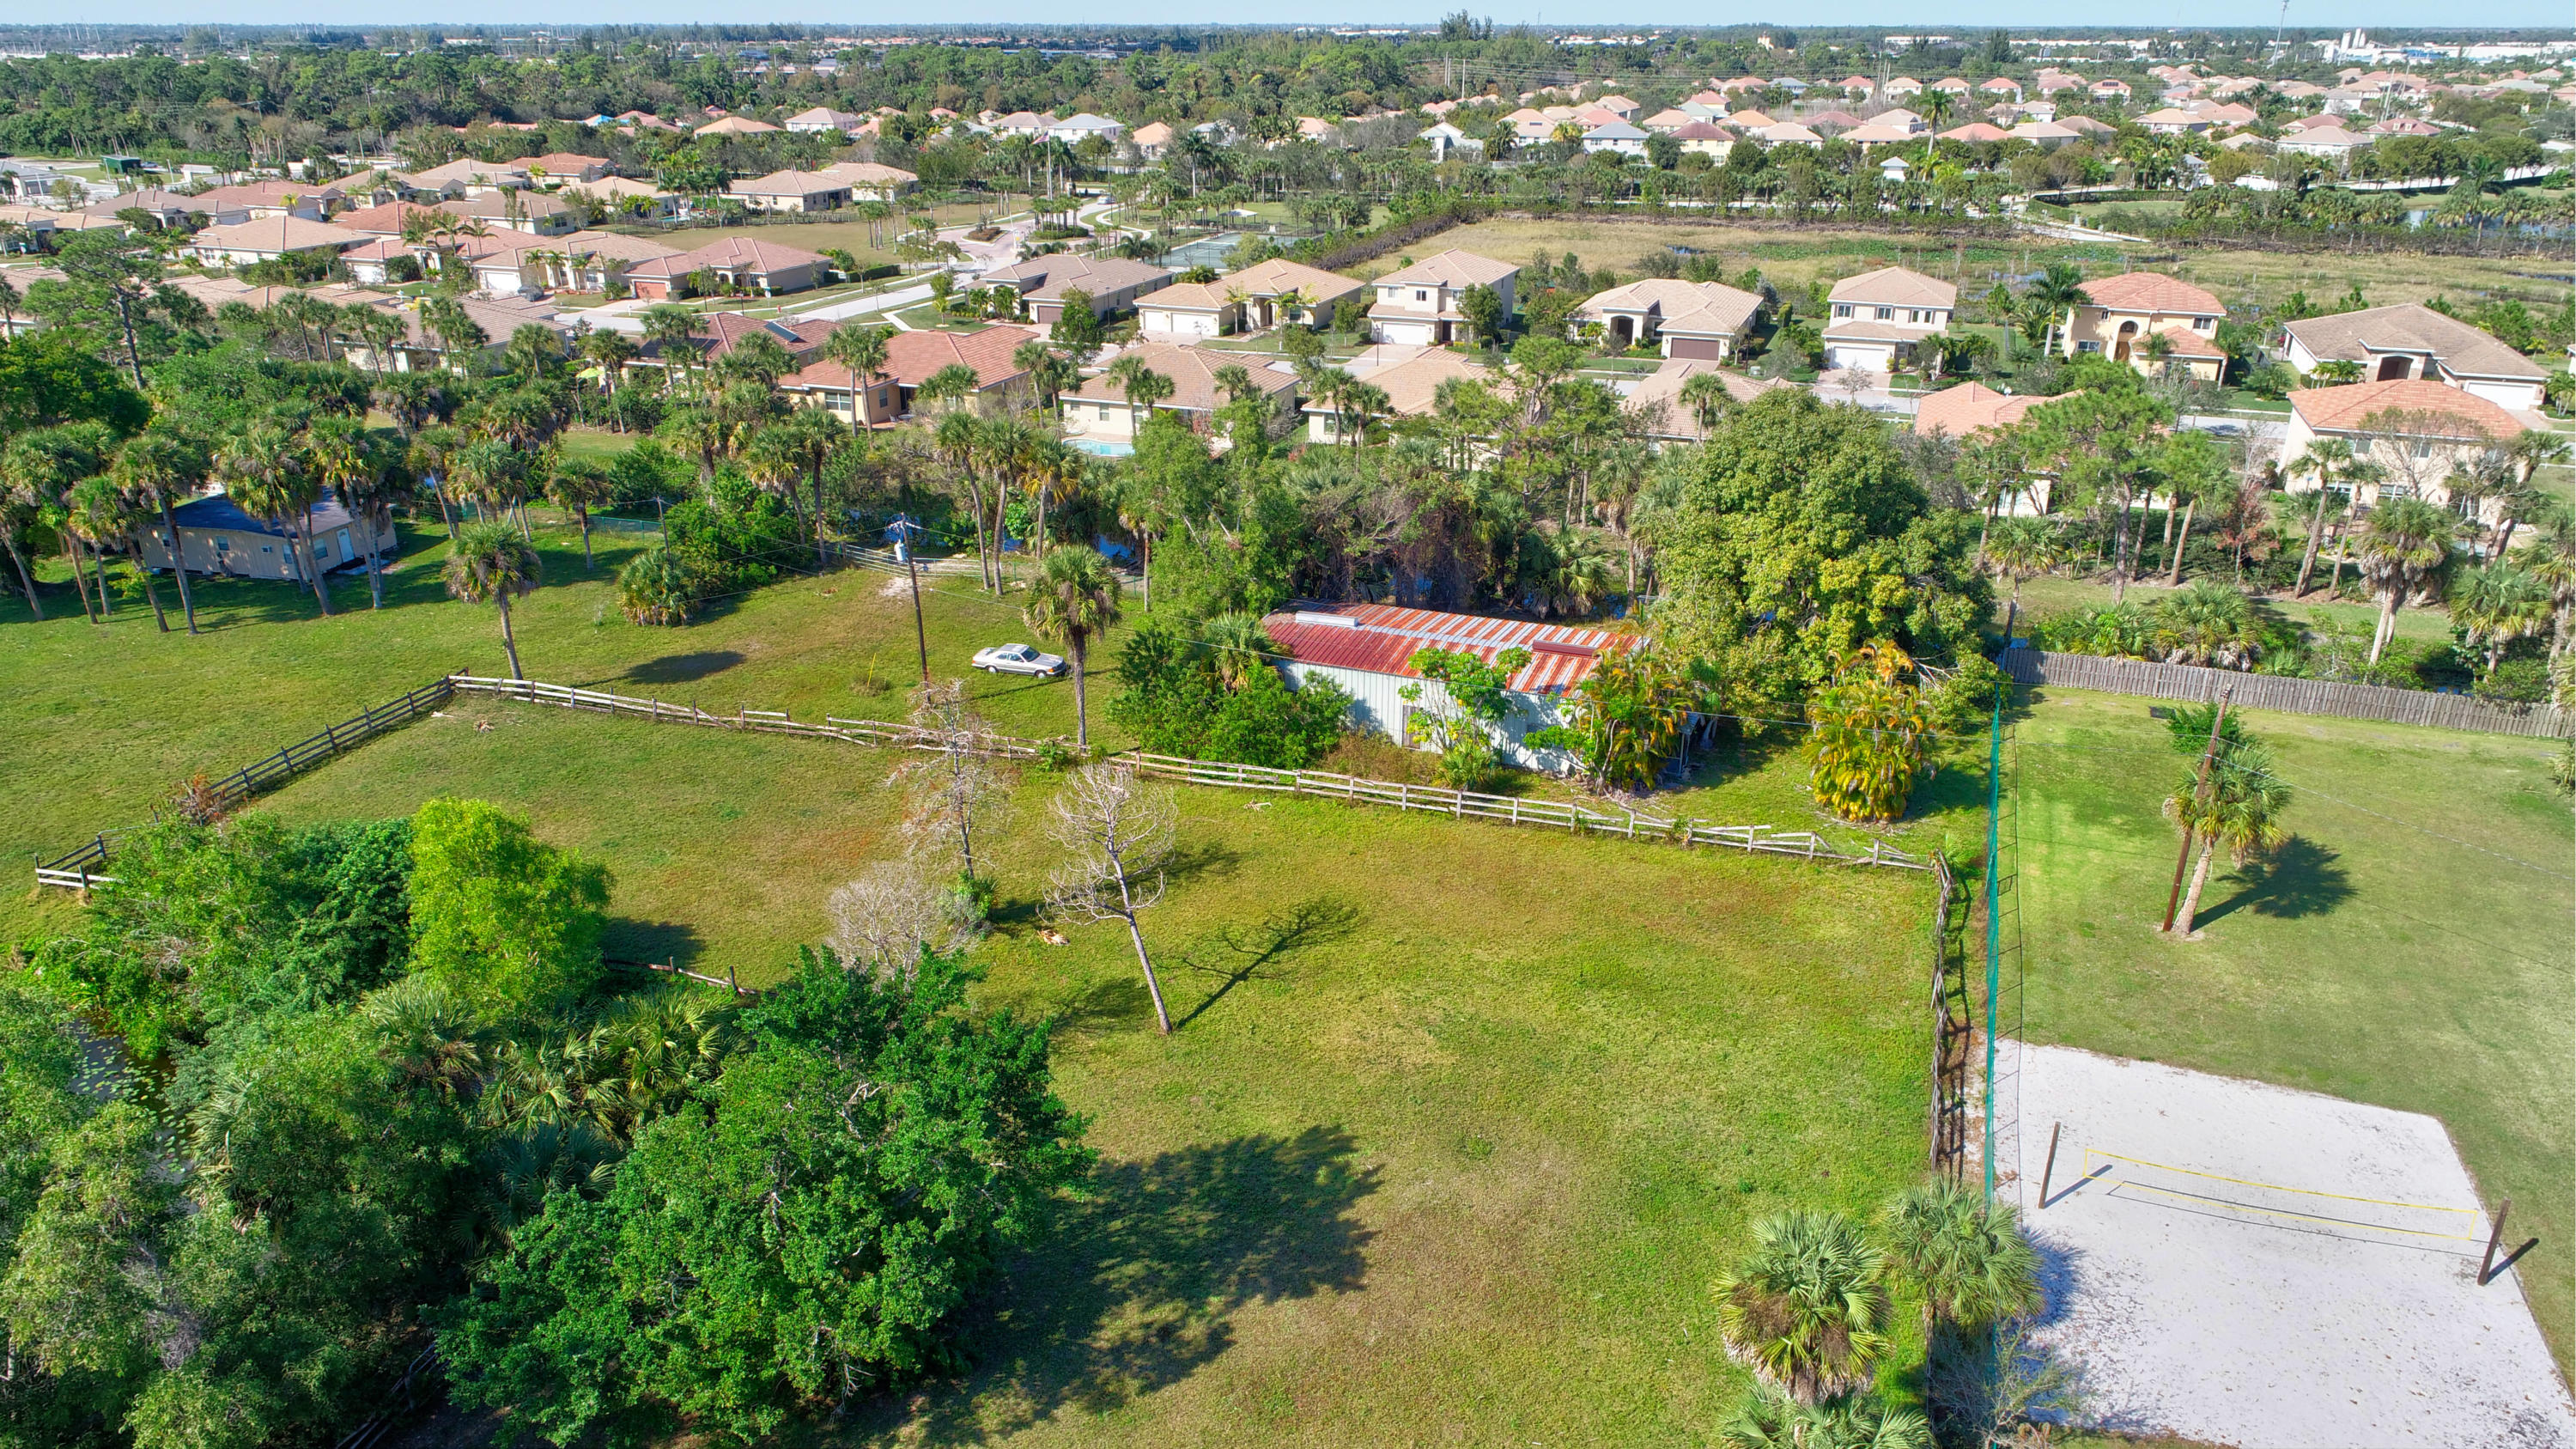 575 Whippoorwill Trail West Palm Beach, FL 33411 small photo 11